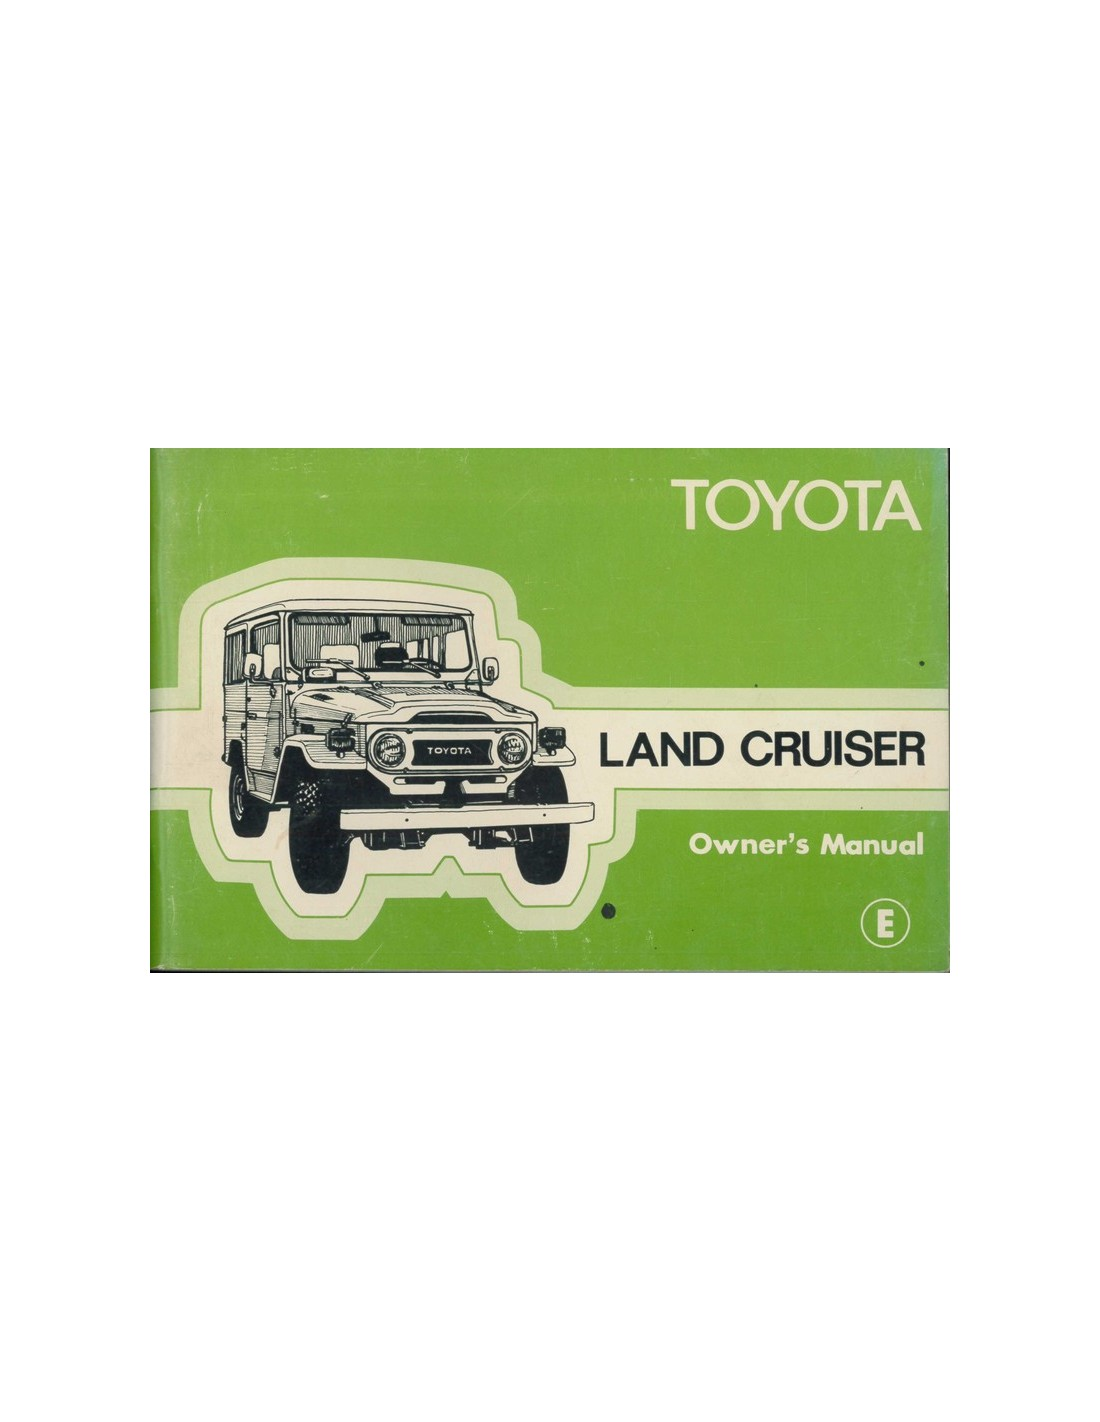 1978 toyota landcruiser owner s manual english rh autolit eu toyota land cruiser owner manual toyota land cruiser user manual